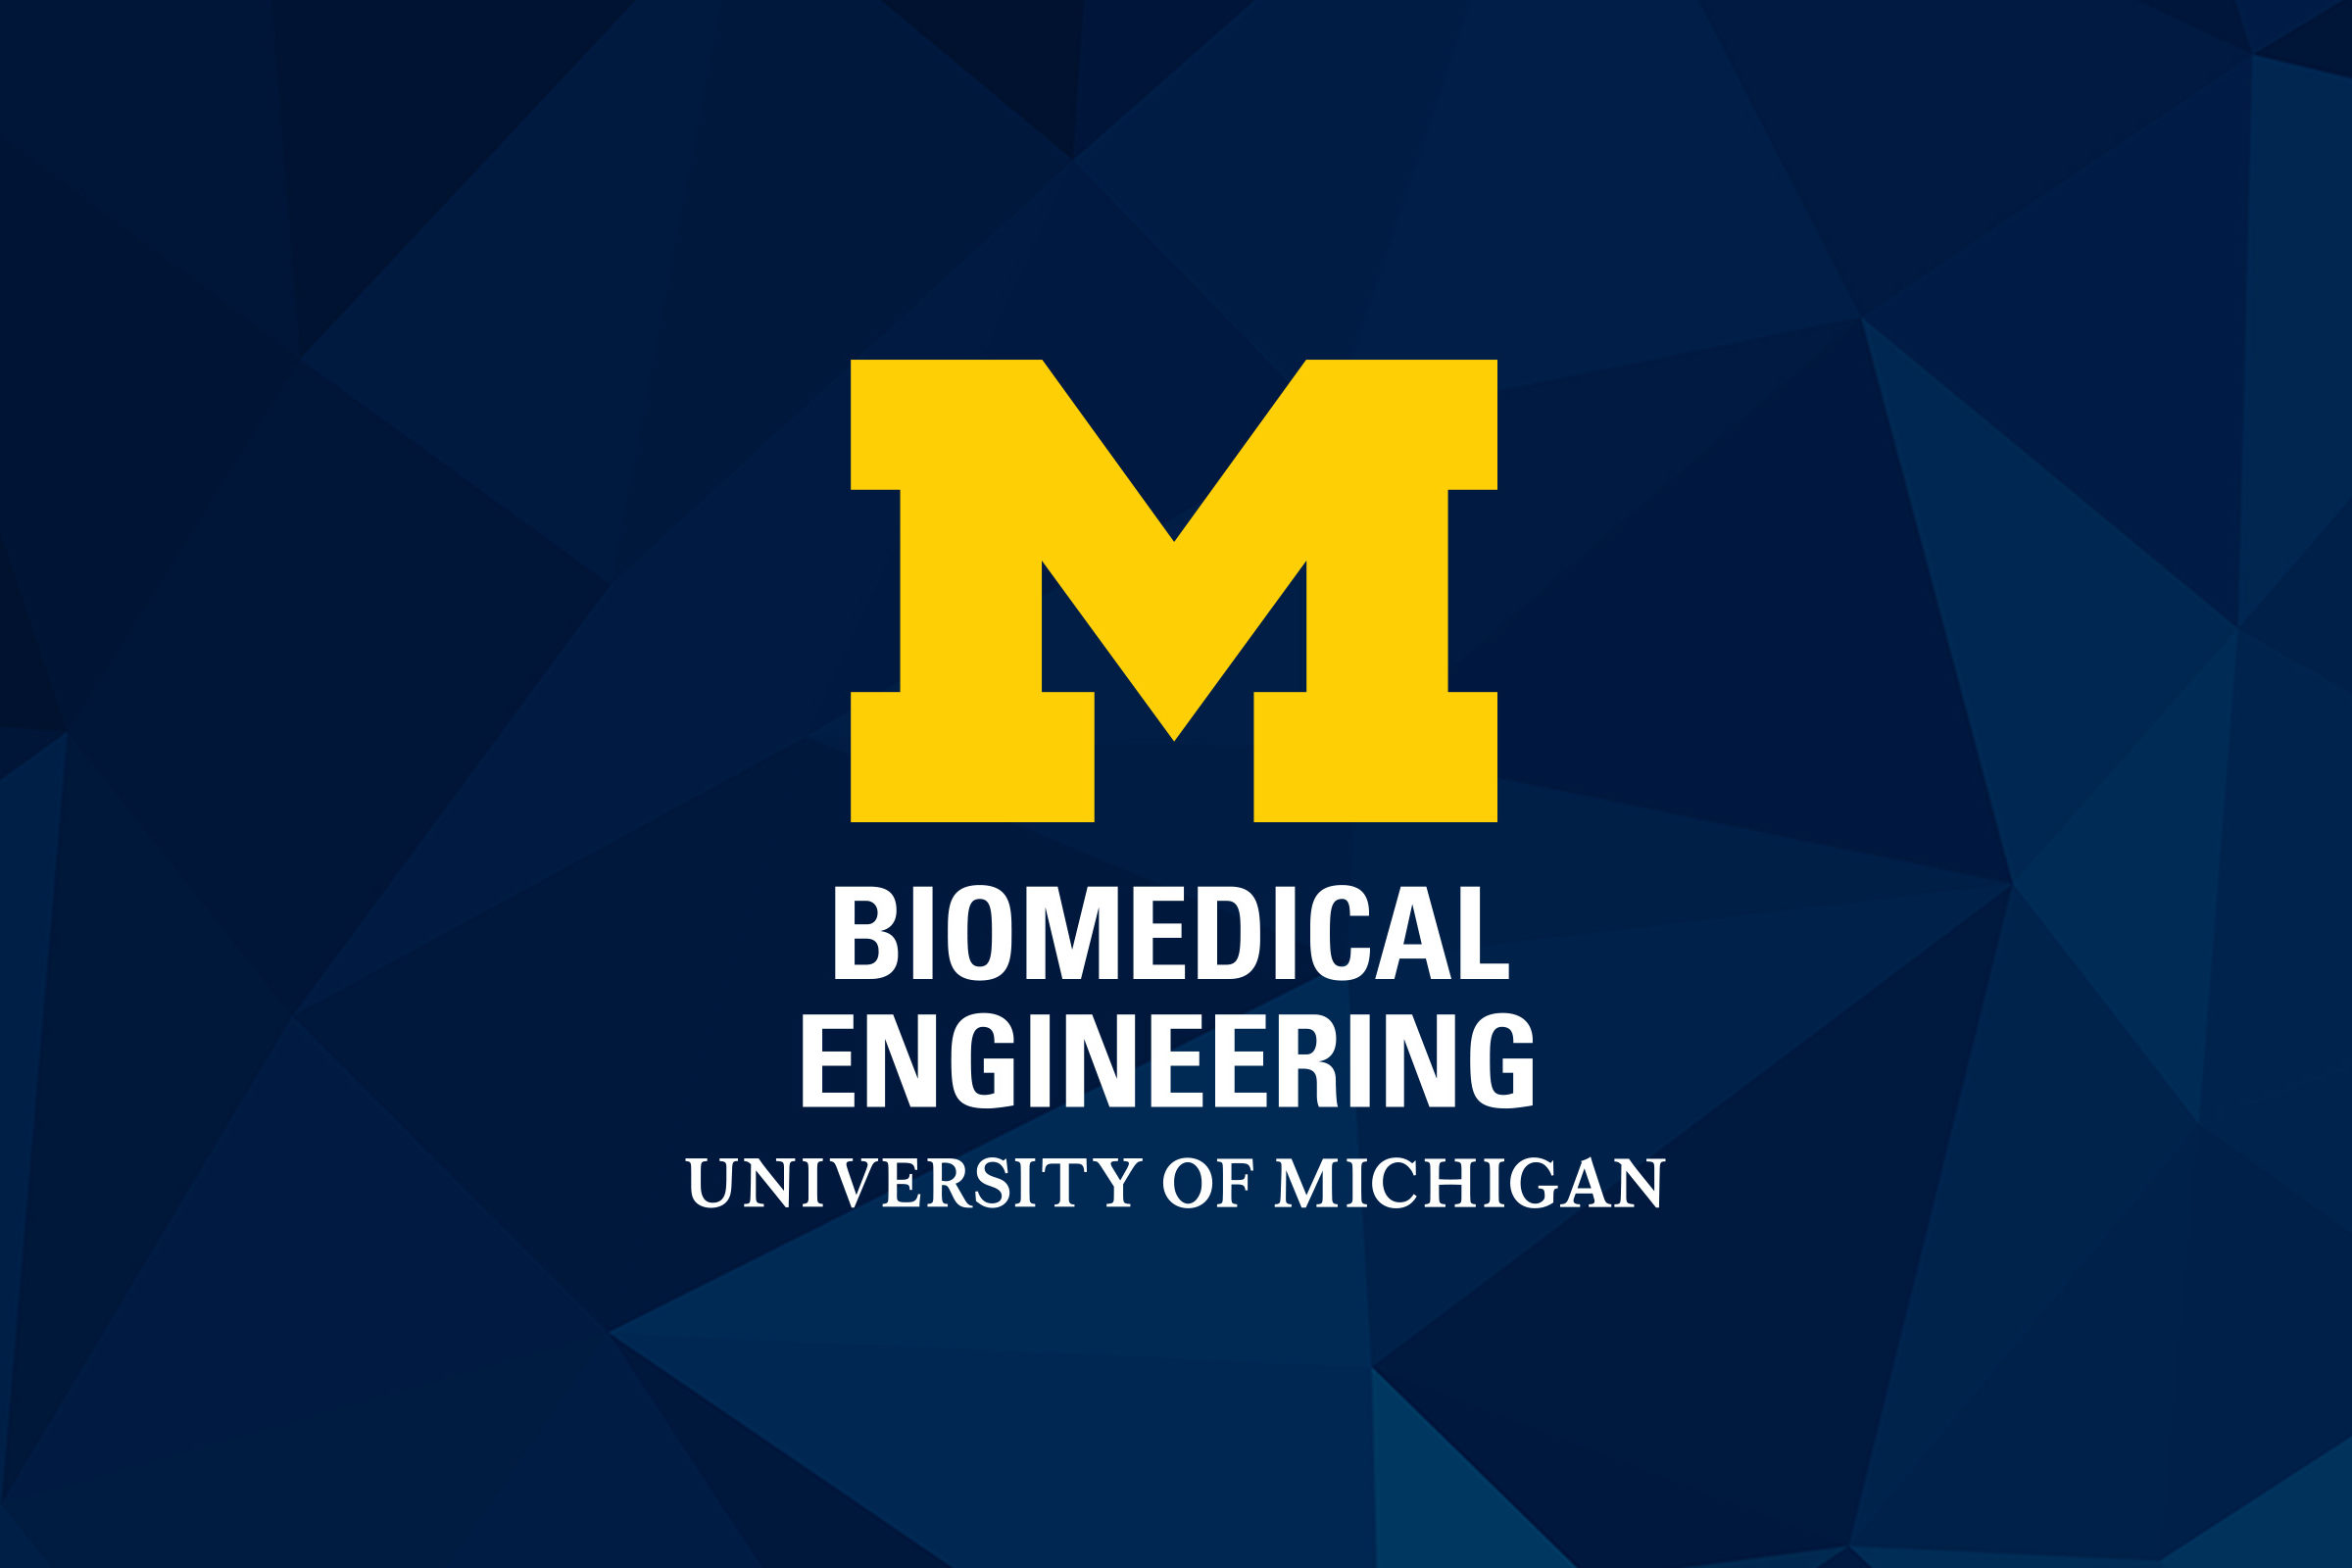 Biomedical Engineering logo